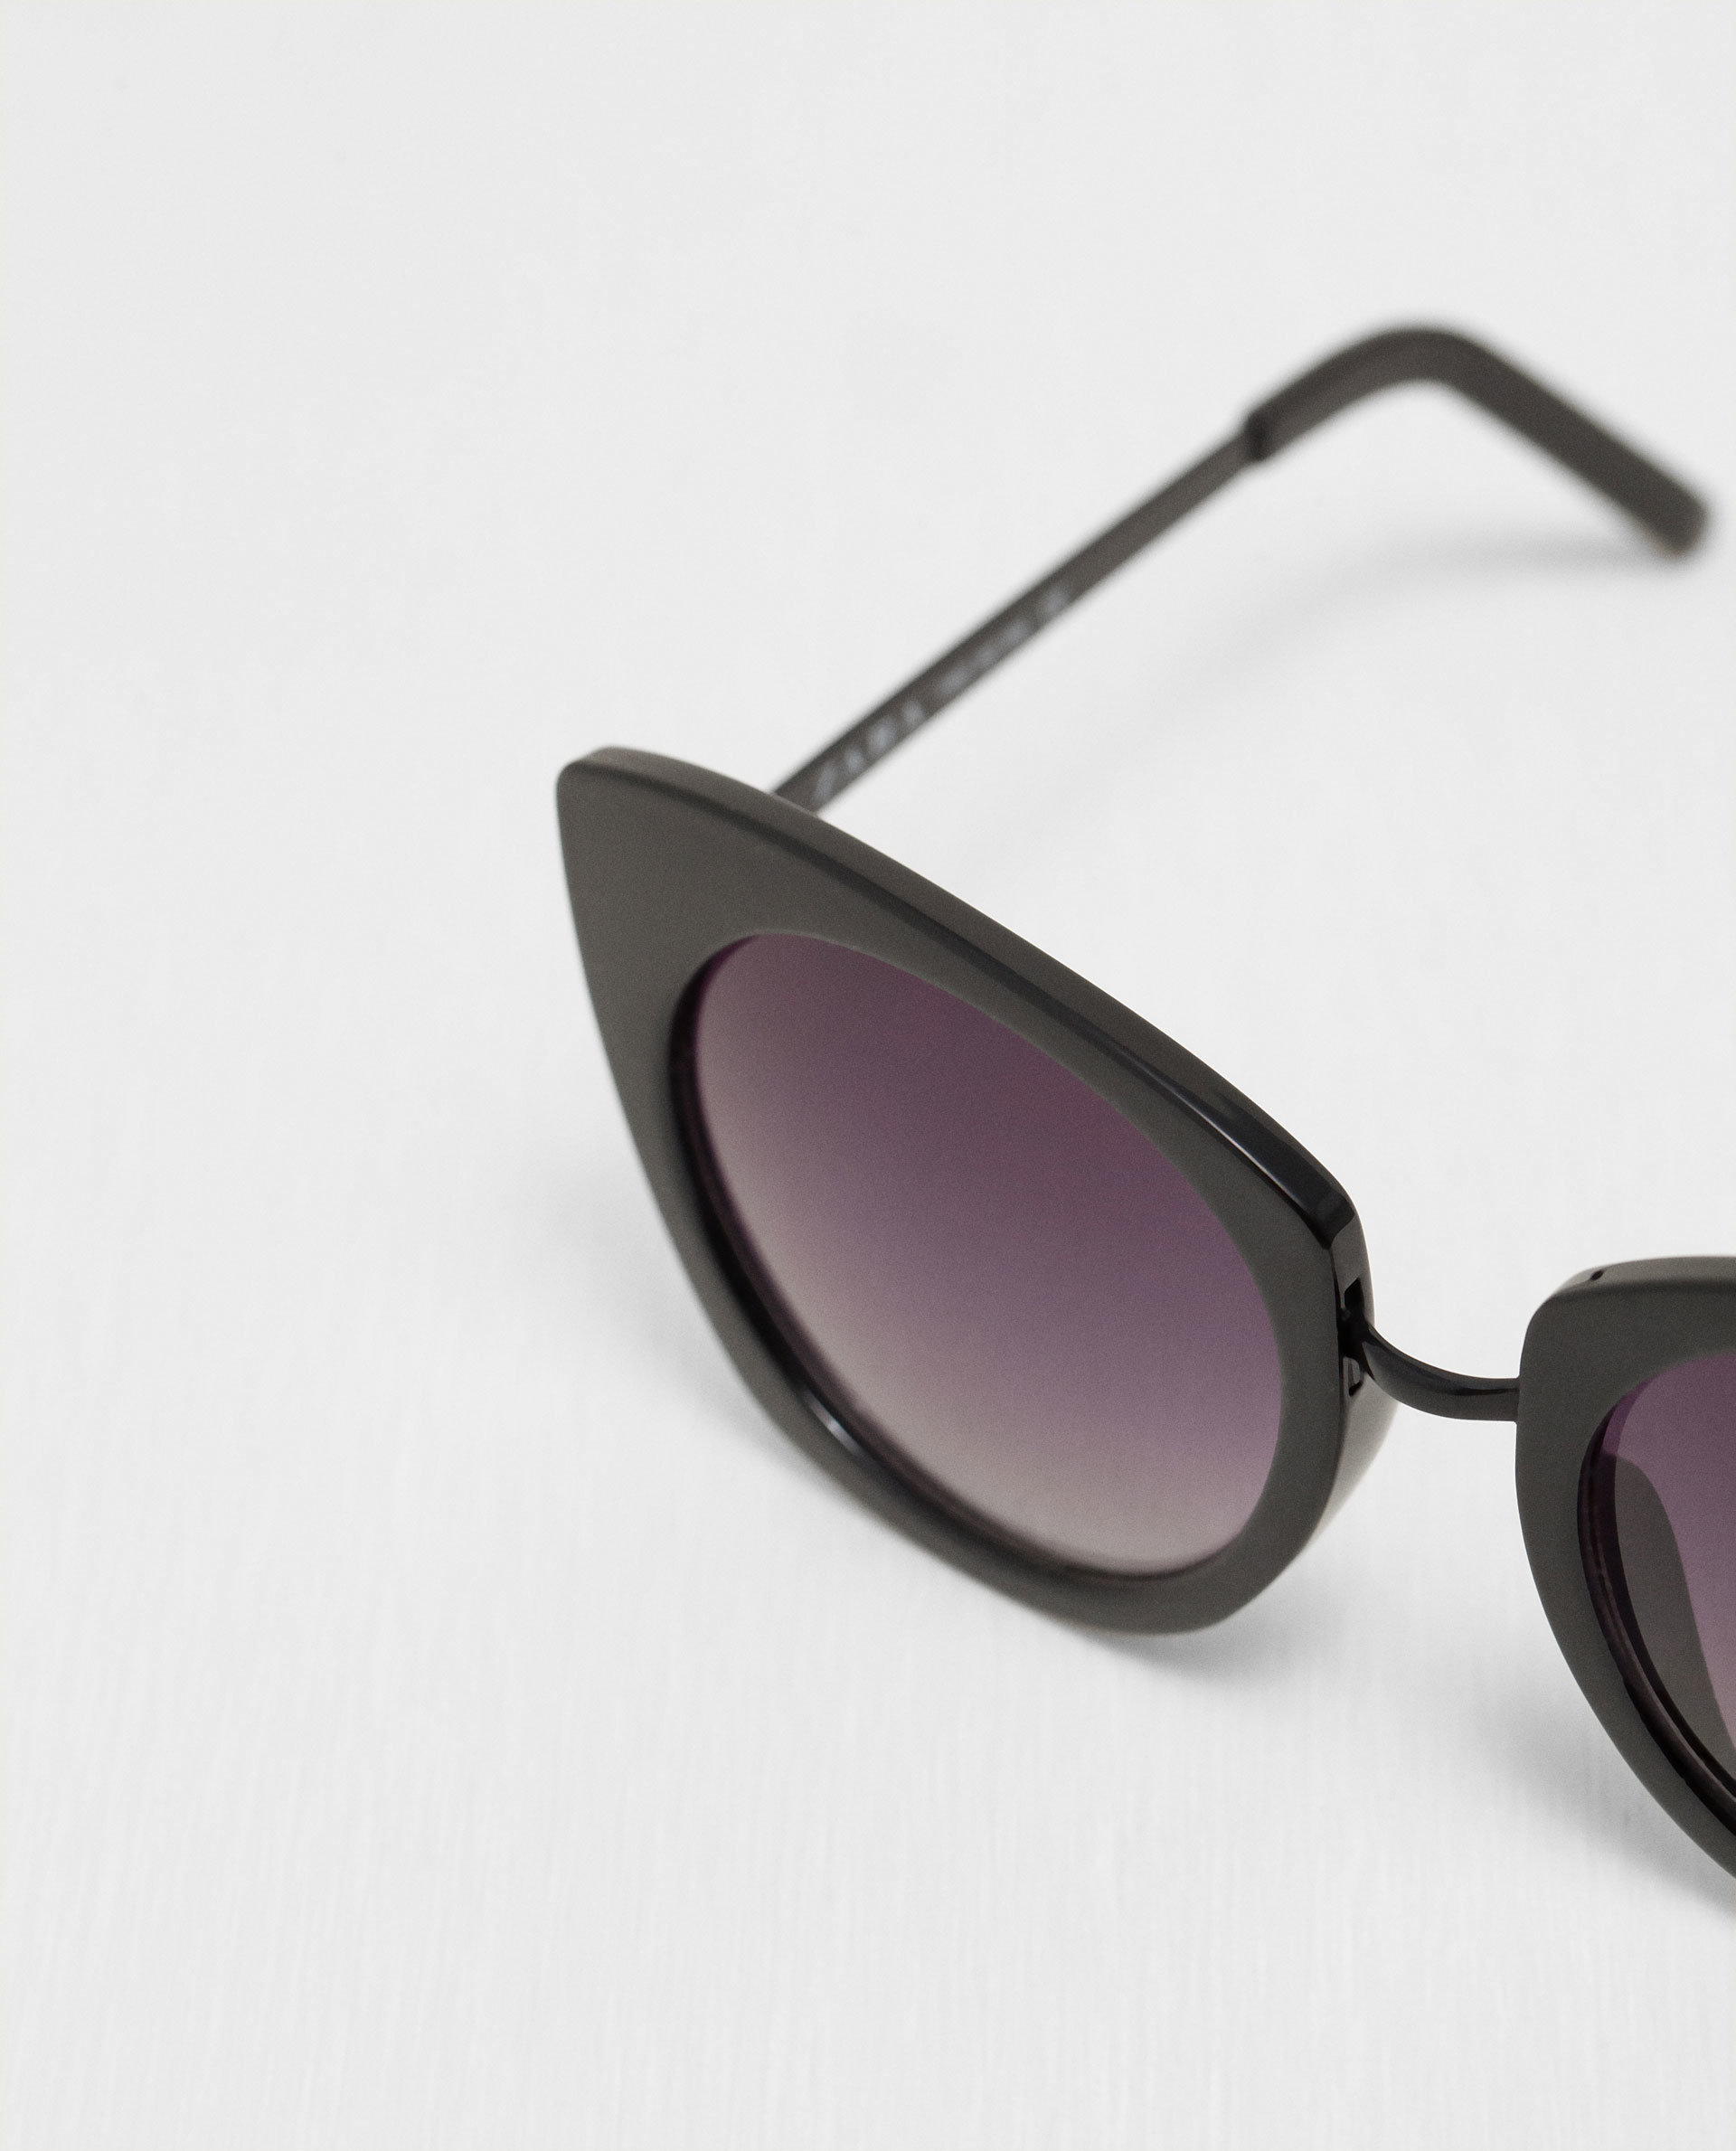 Zara Glasses With Metallic Arms Lyst